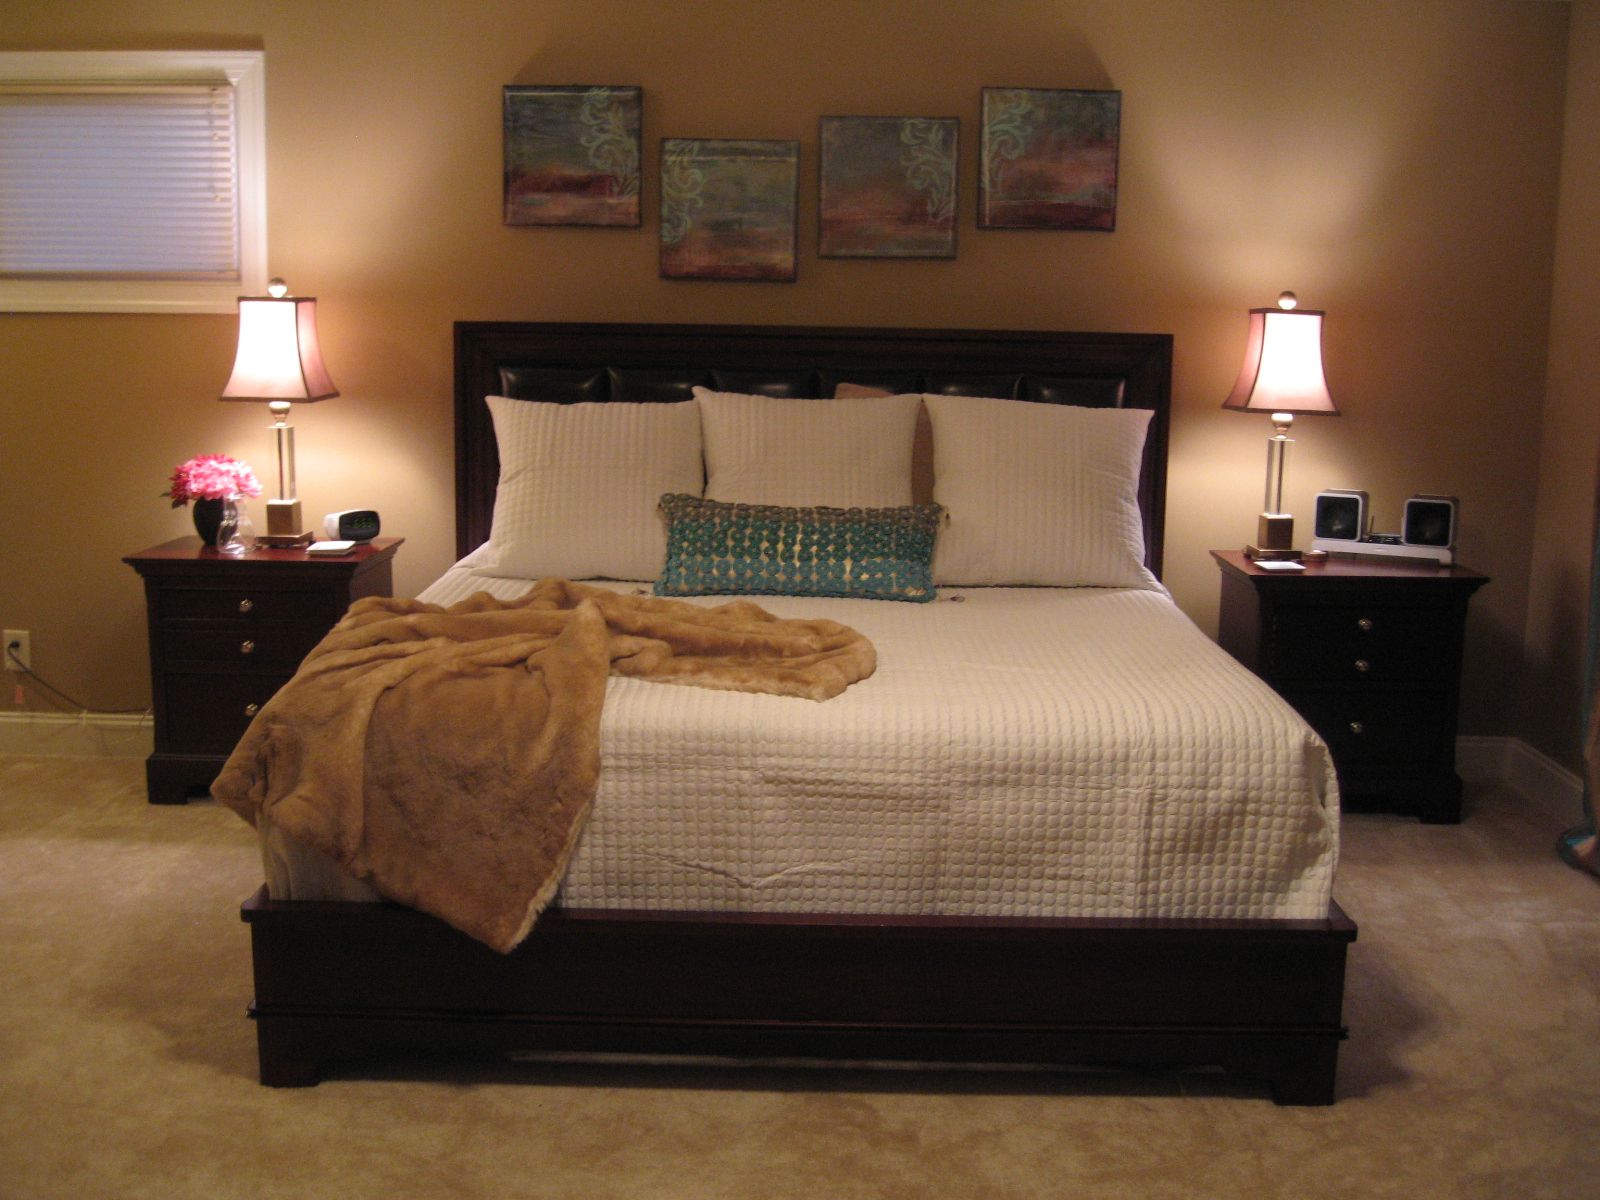 301 moved permanently for Bedroom ideas decorating master